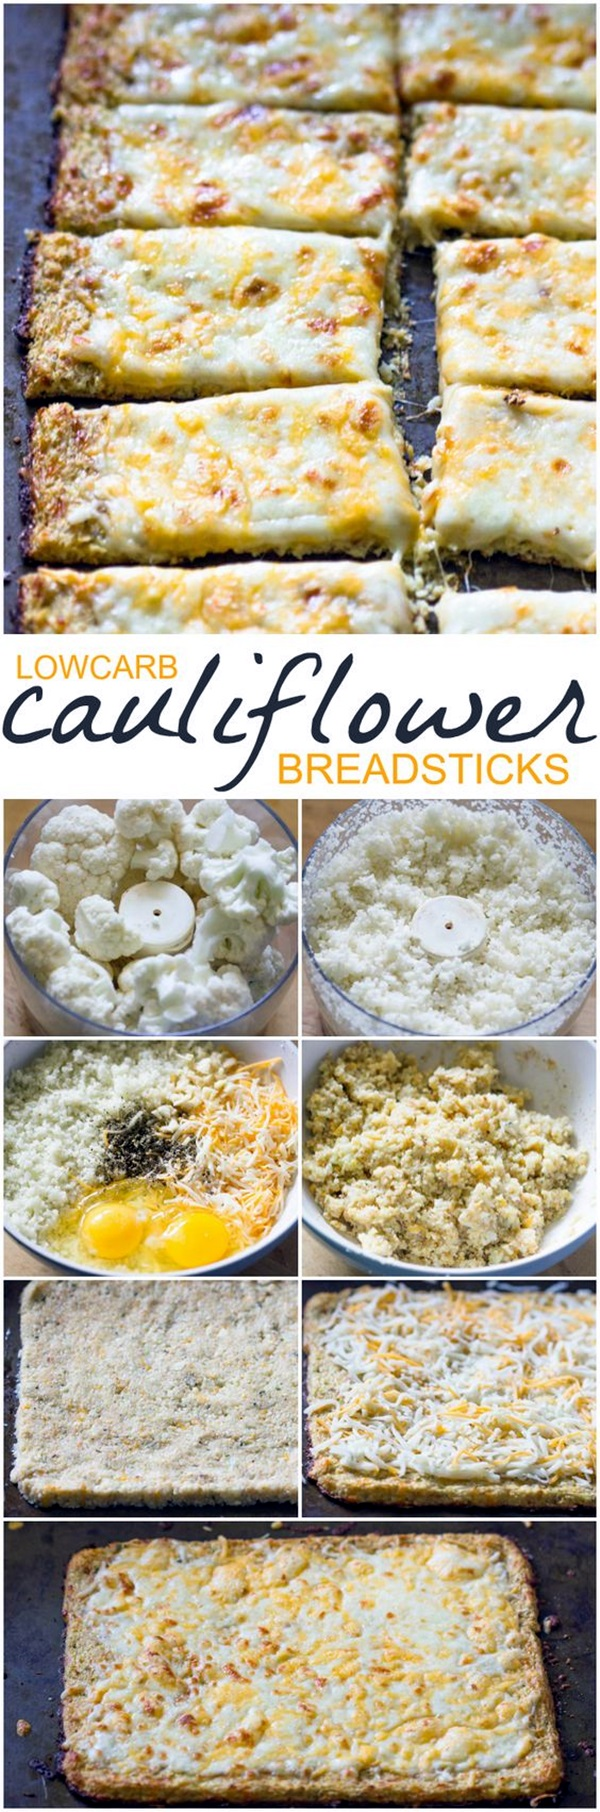 Ways To Use Cauliflower As A Low-Carb Replacement (2)